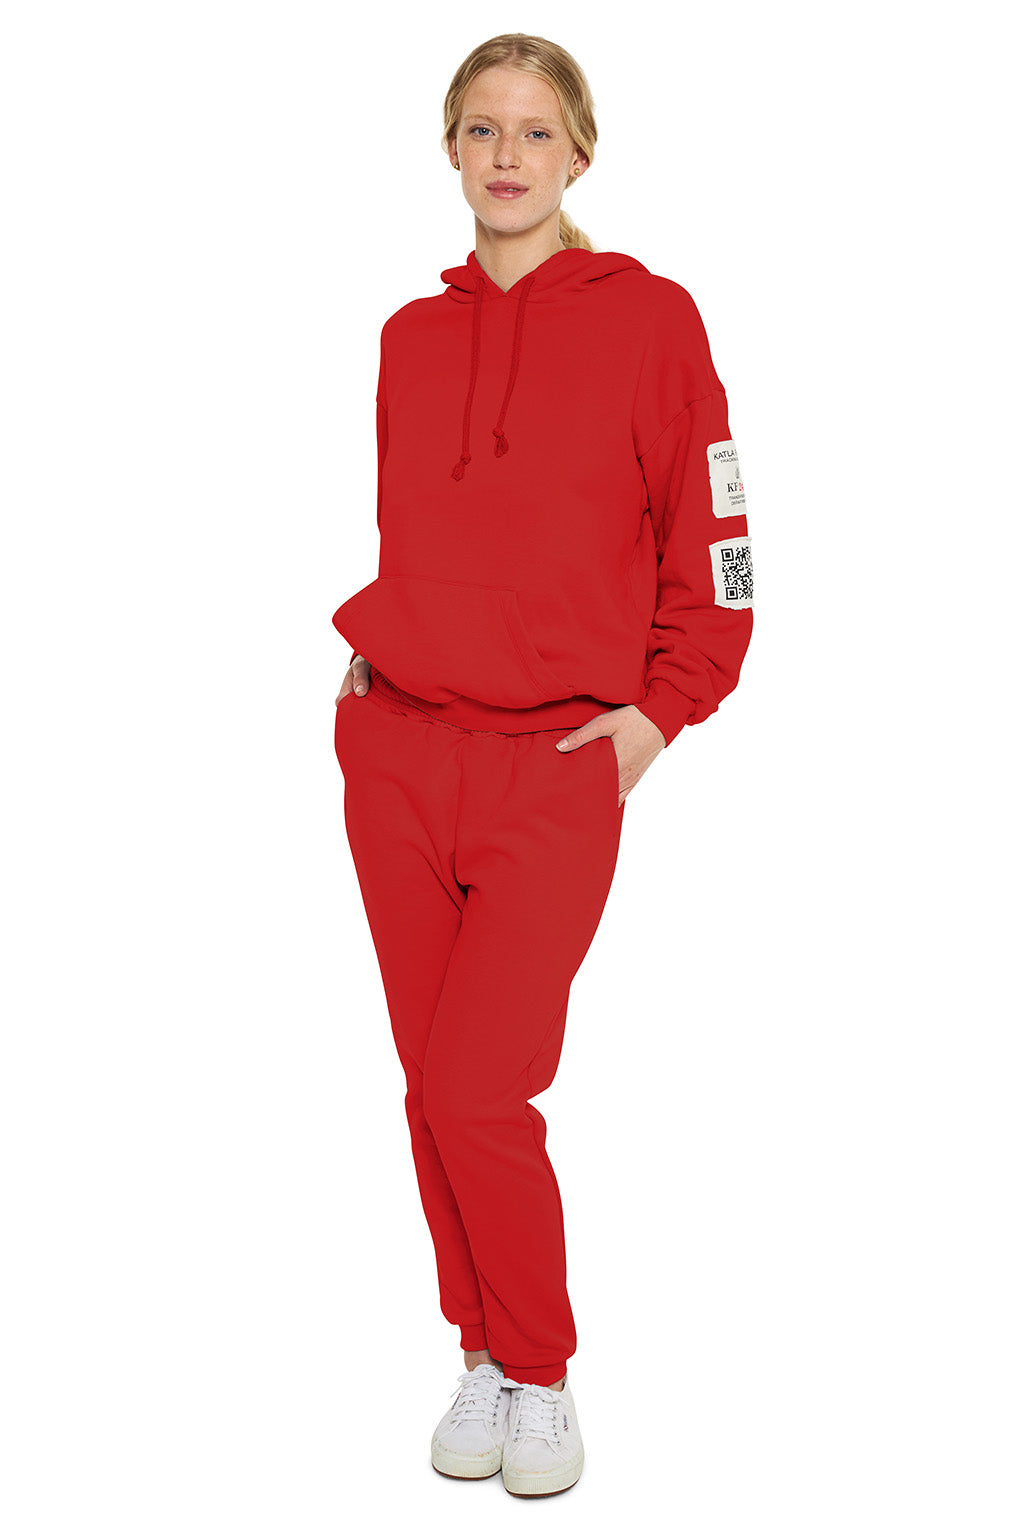 KATLA FORCE SWEATSUIT